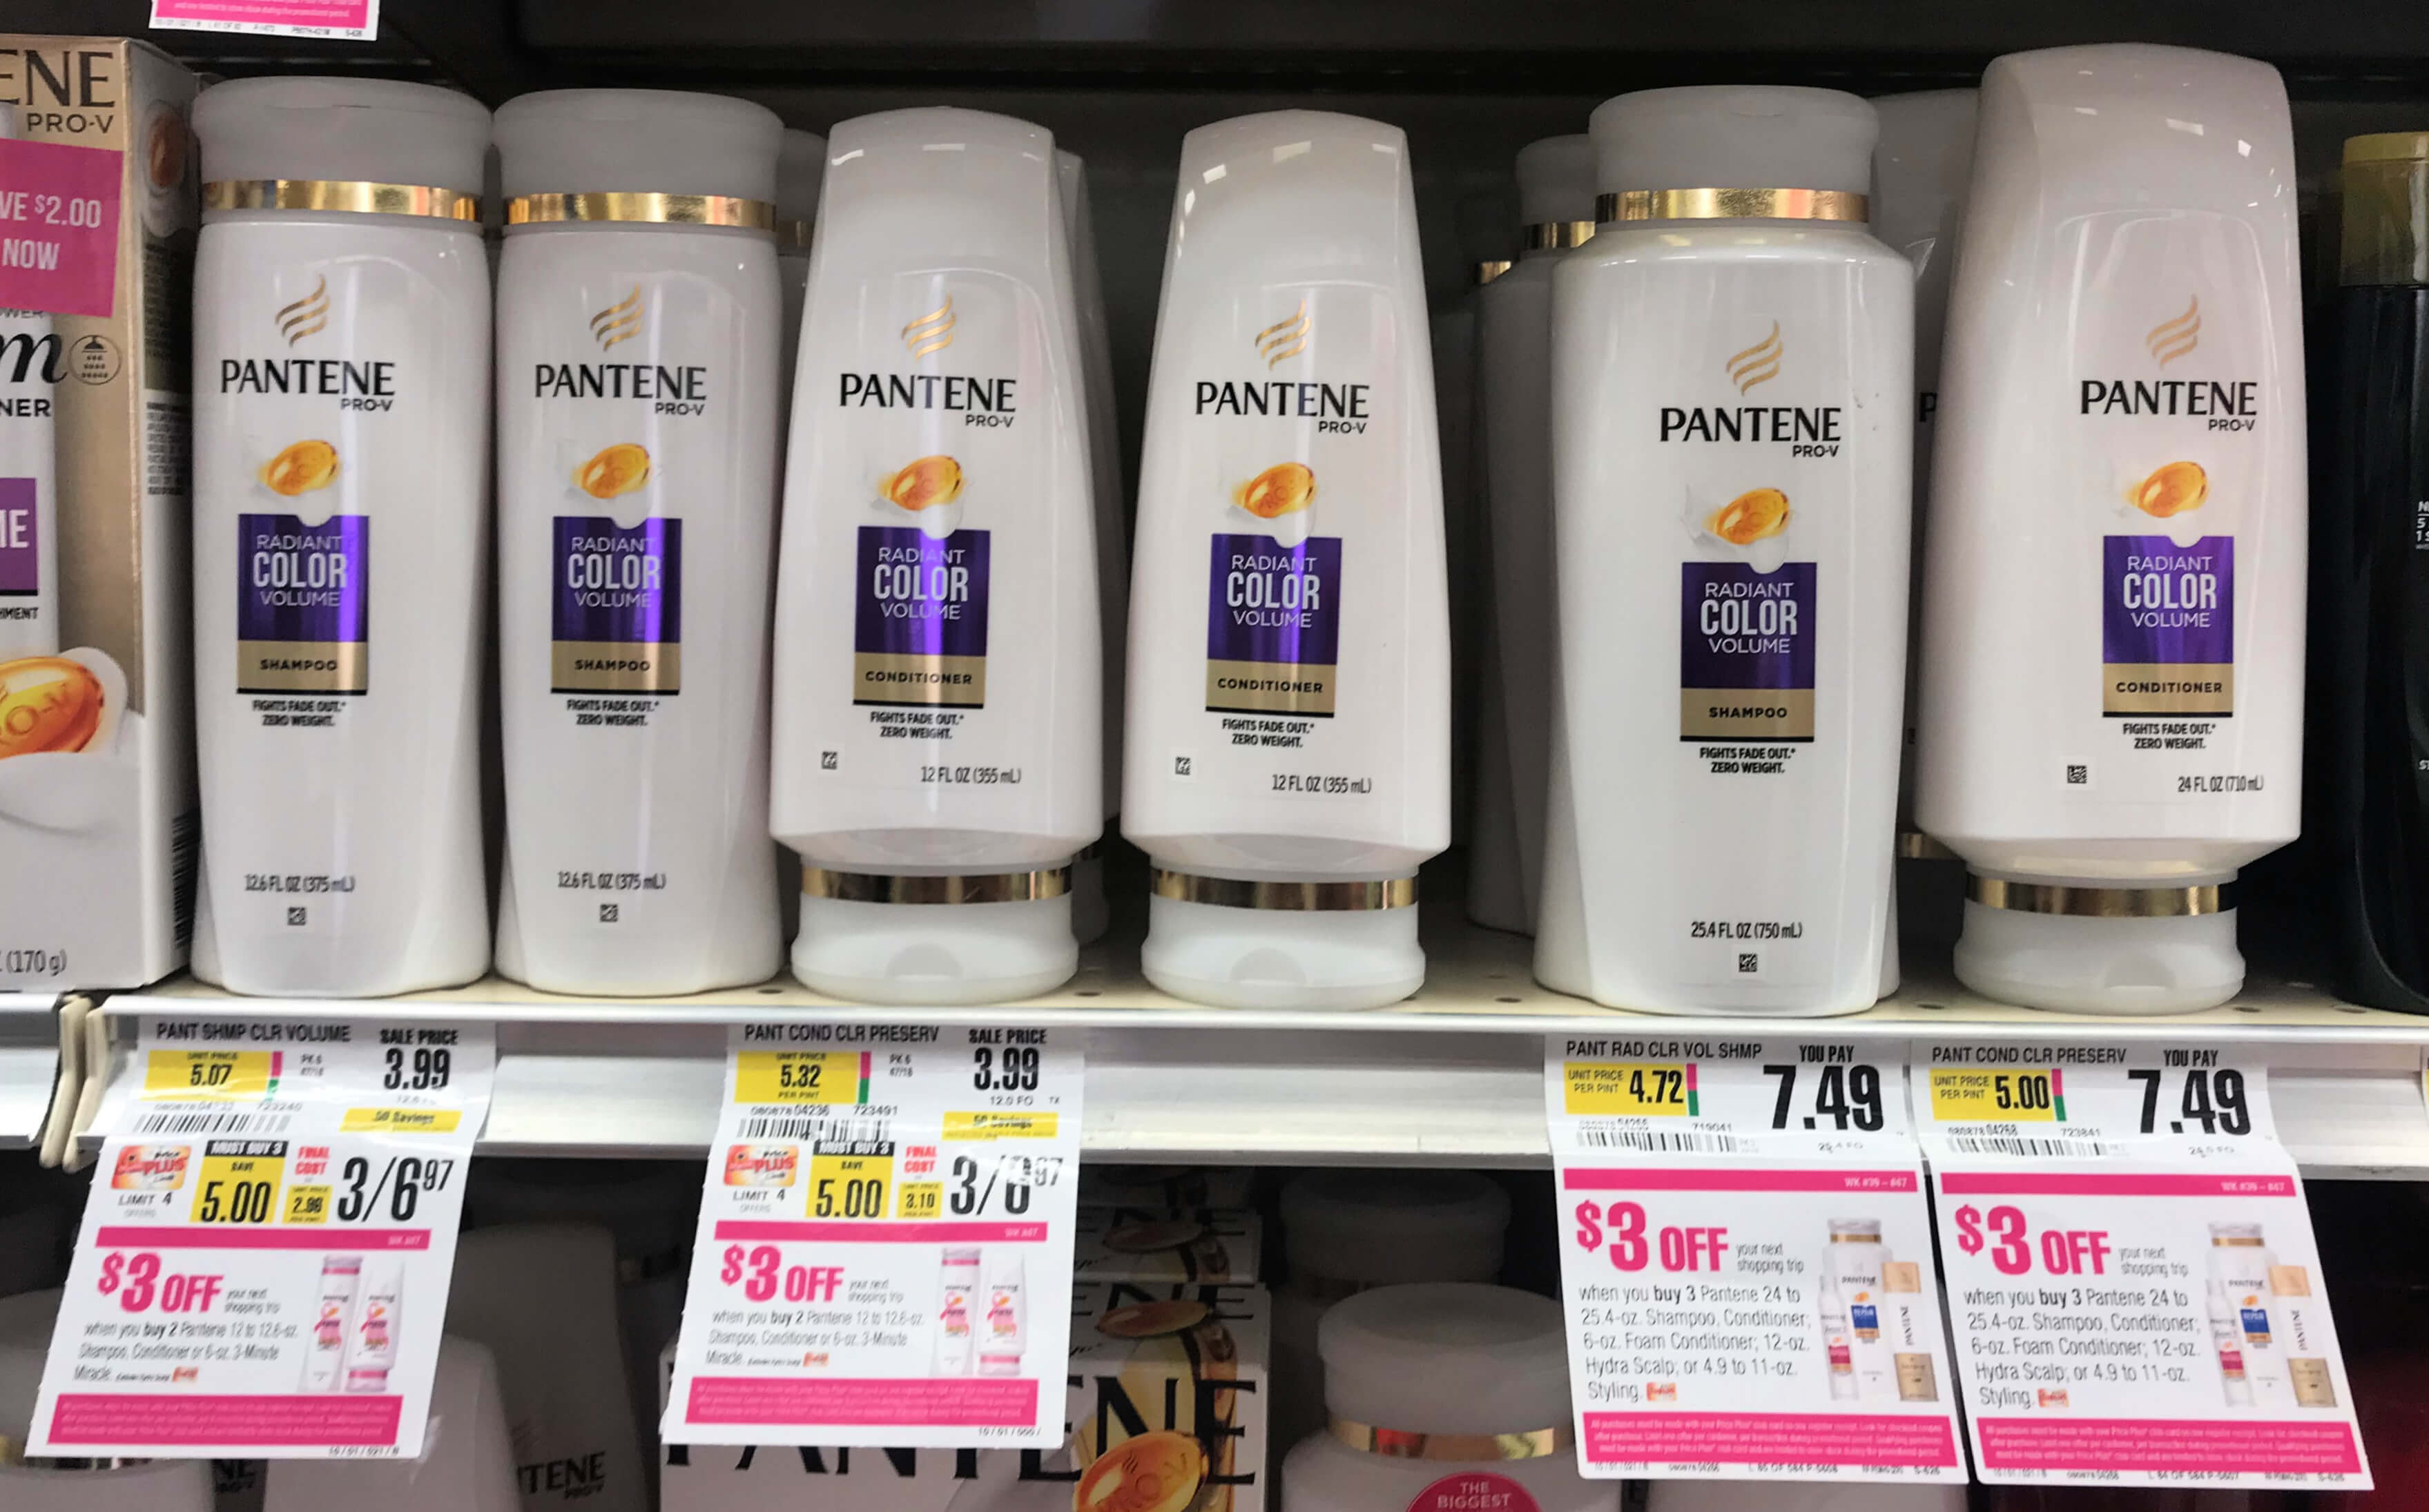 image regarding Printable Pantene Coupons $5 3 referred to as Around a $1.00 Fiscal Manufacturer + 3 Totally free Pantene Hair Treatment at